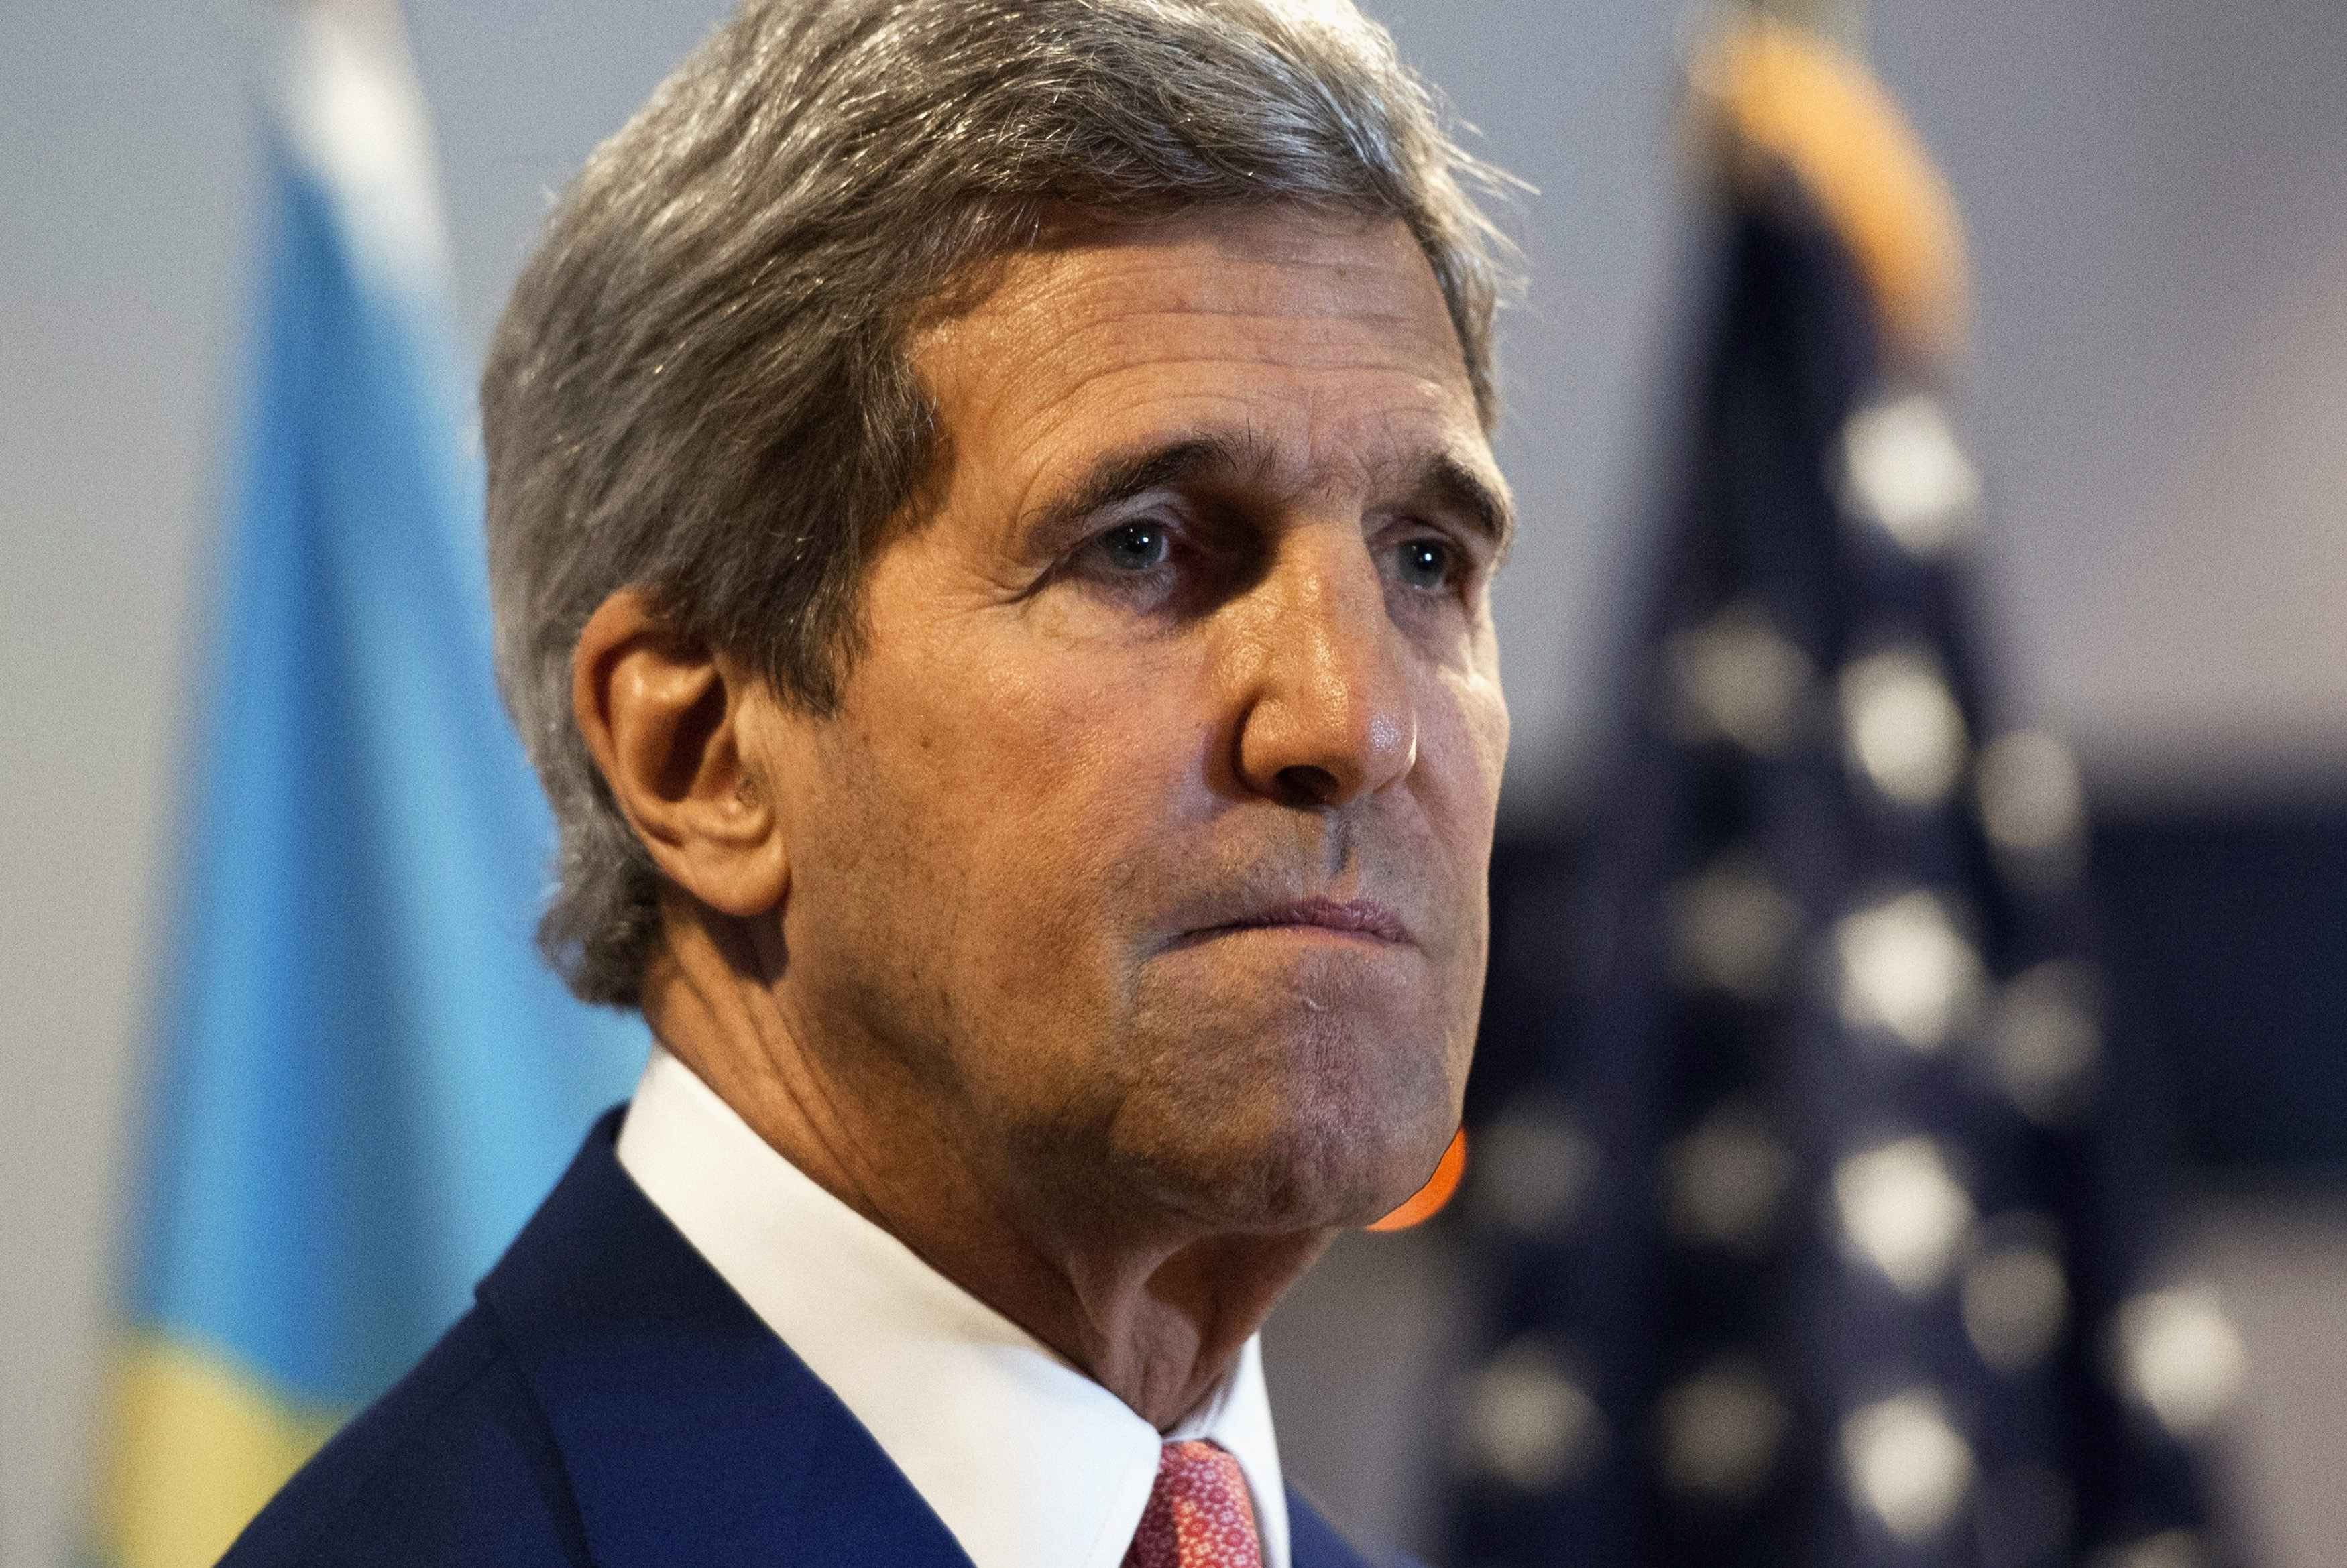 U.S. Secretary of State John Kerry gives a news conference after meetings at the Palais de la Nation in Kinshasa, Democratic Republic of Congo on May 4, 2014.